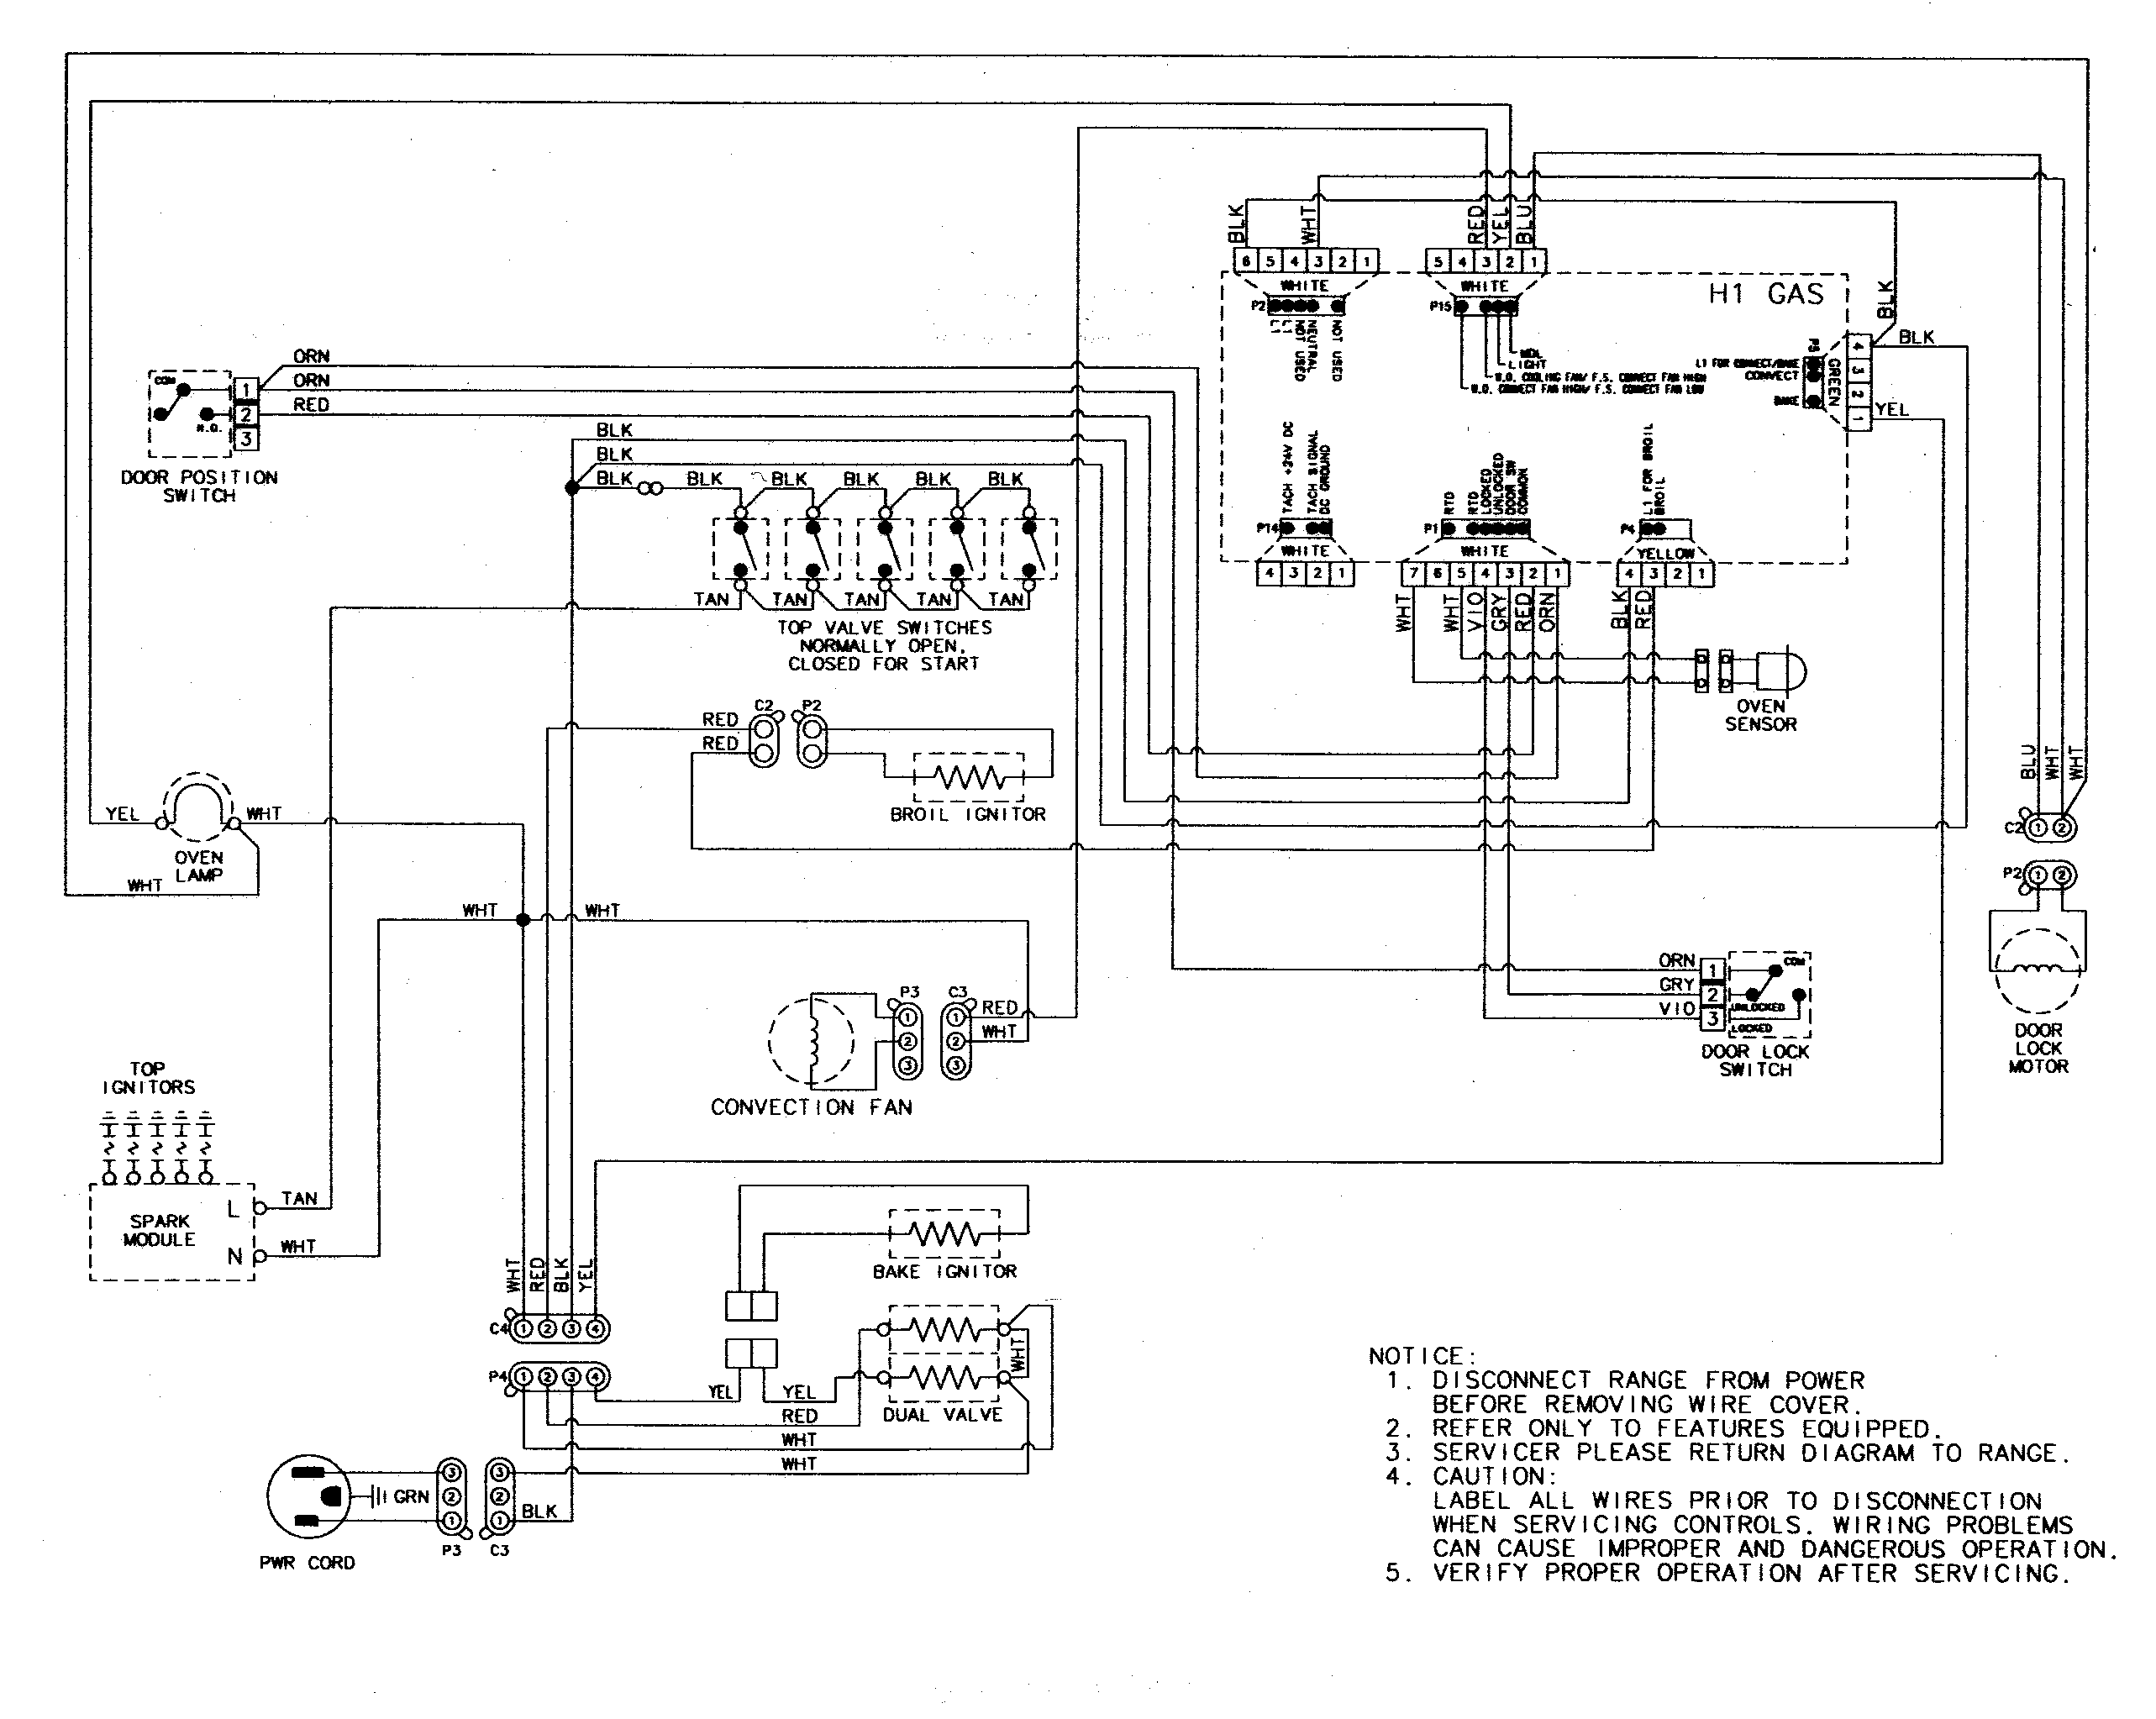 Creda Oven Wiring Diagram moreover 95 Chevy Heater Motor Wiring Diagram in addition GTD42EASJ0WW also HTDP120ED2WW as well Gmc Sierra Mk1 1999 2000 Fuse Box Diagram. on dryer vent blower